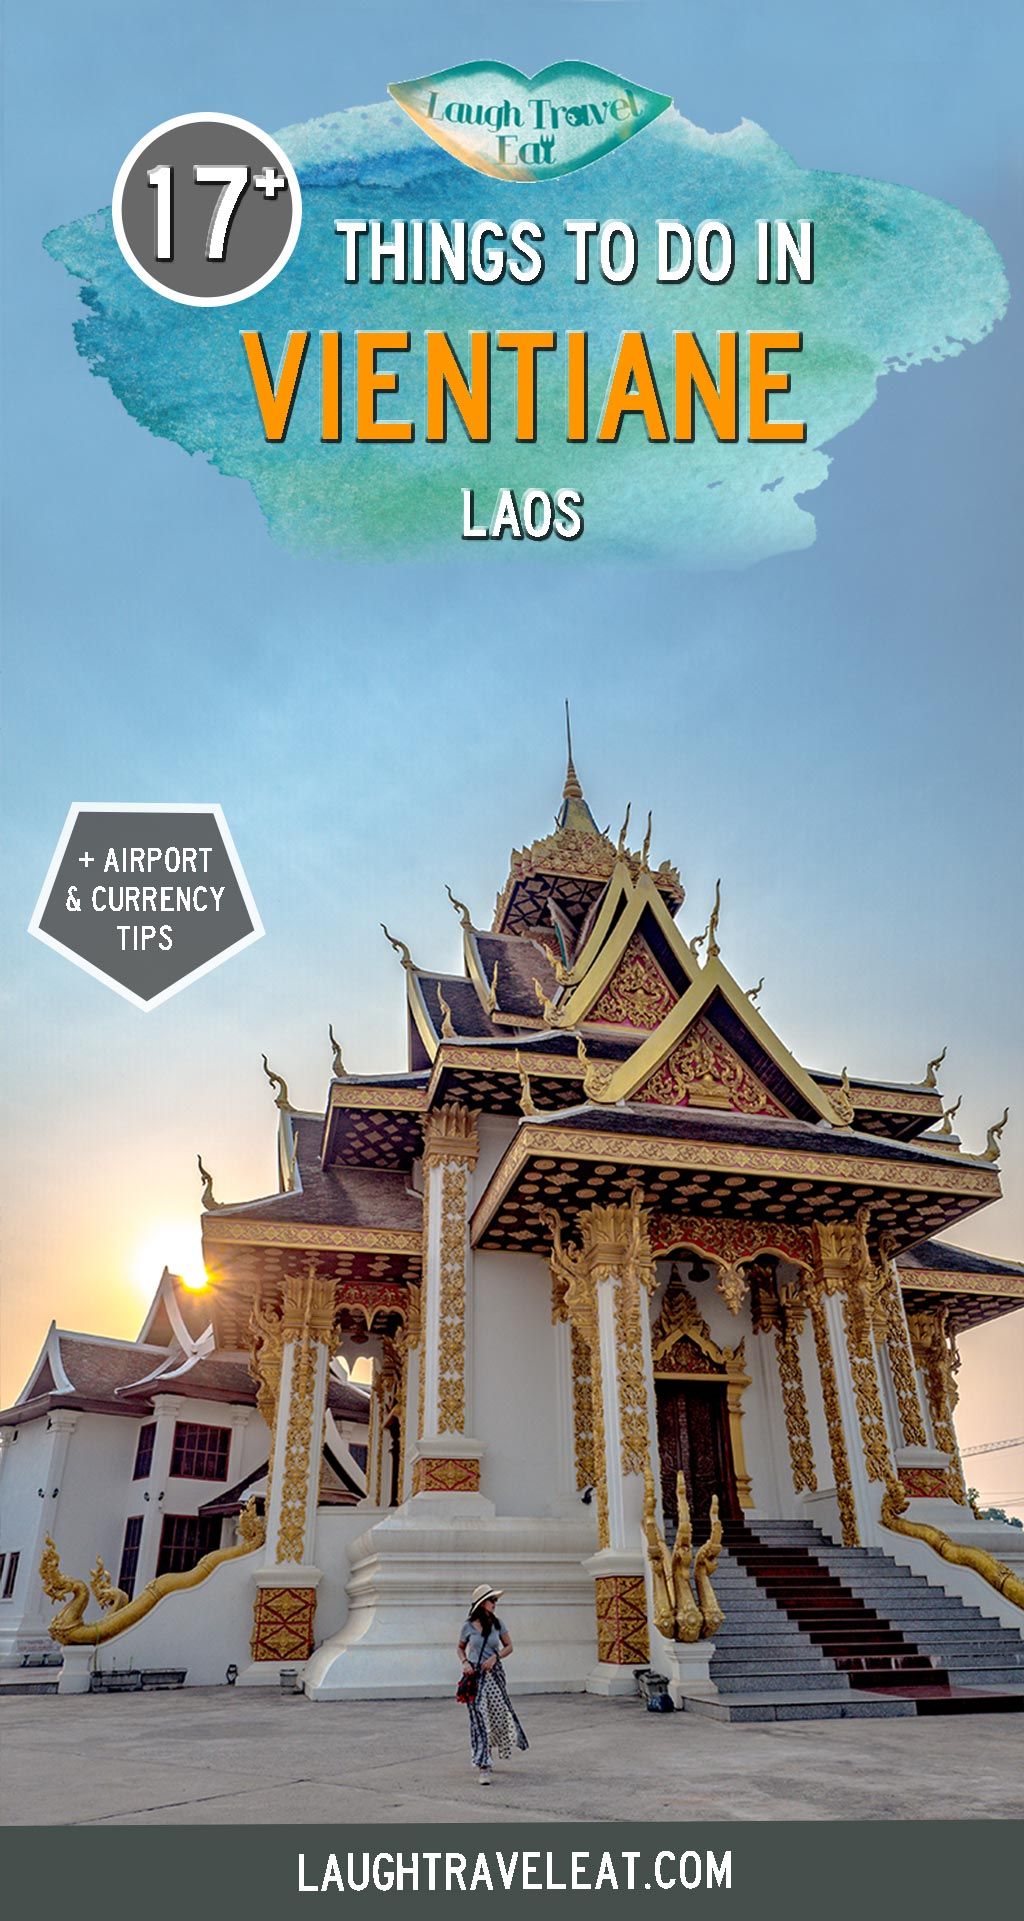 Vientiane is the capital of Laos and often considered to be a transit spot. But on closer inspection, you'll find many beautiful nooks and crannies hidden around town. Here are 17+ things to do and where to eat and stay #Vietiane #Laos #SEAsia #Asia